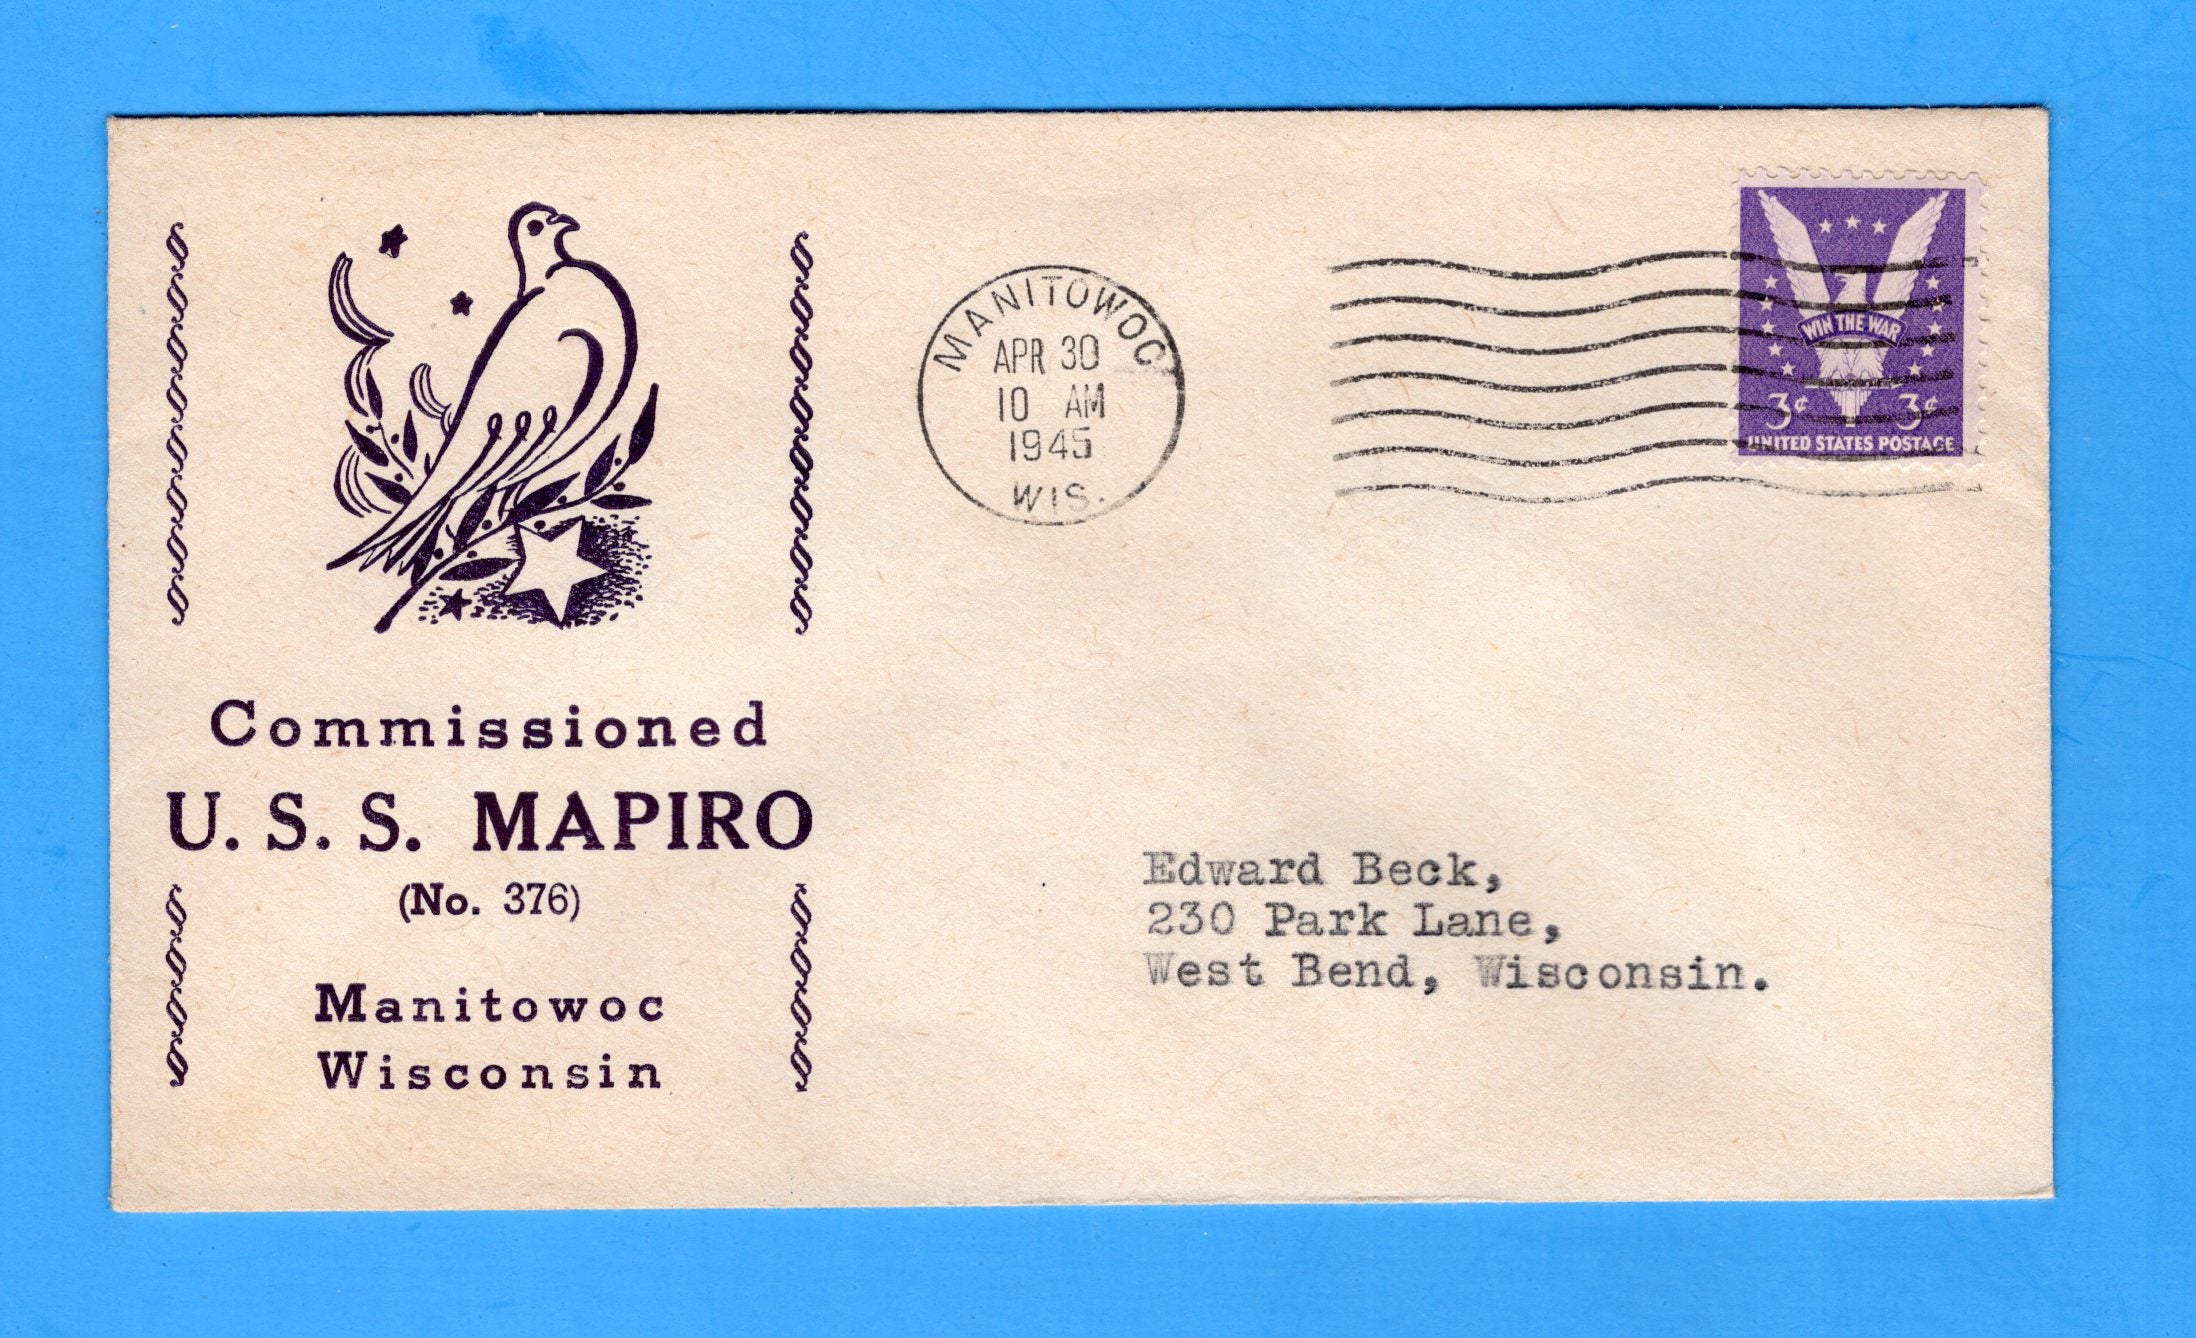 USS Mapiro SS-376 Commissioned  at Manitowoc, Wisconsin April 30, 1945